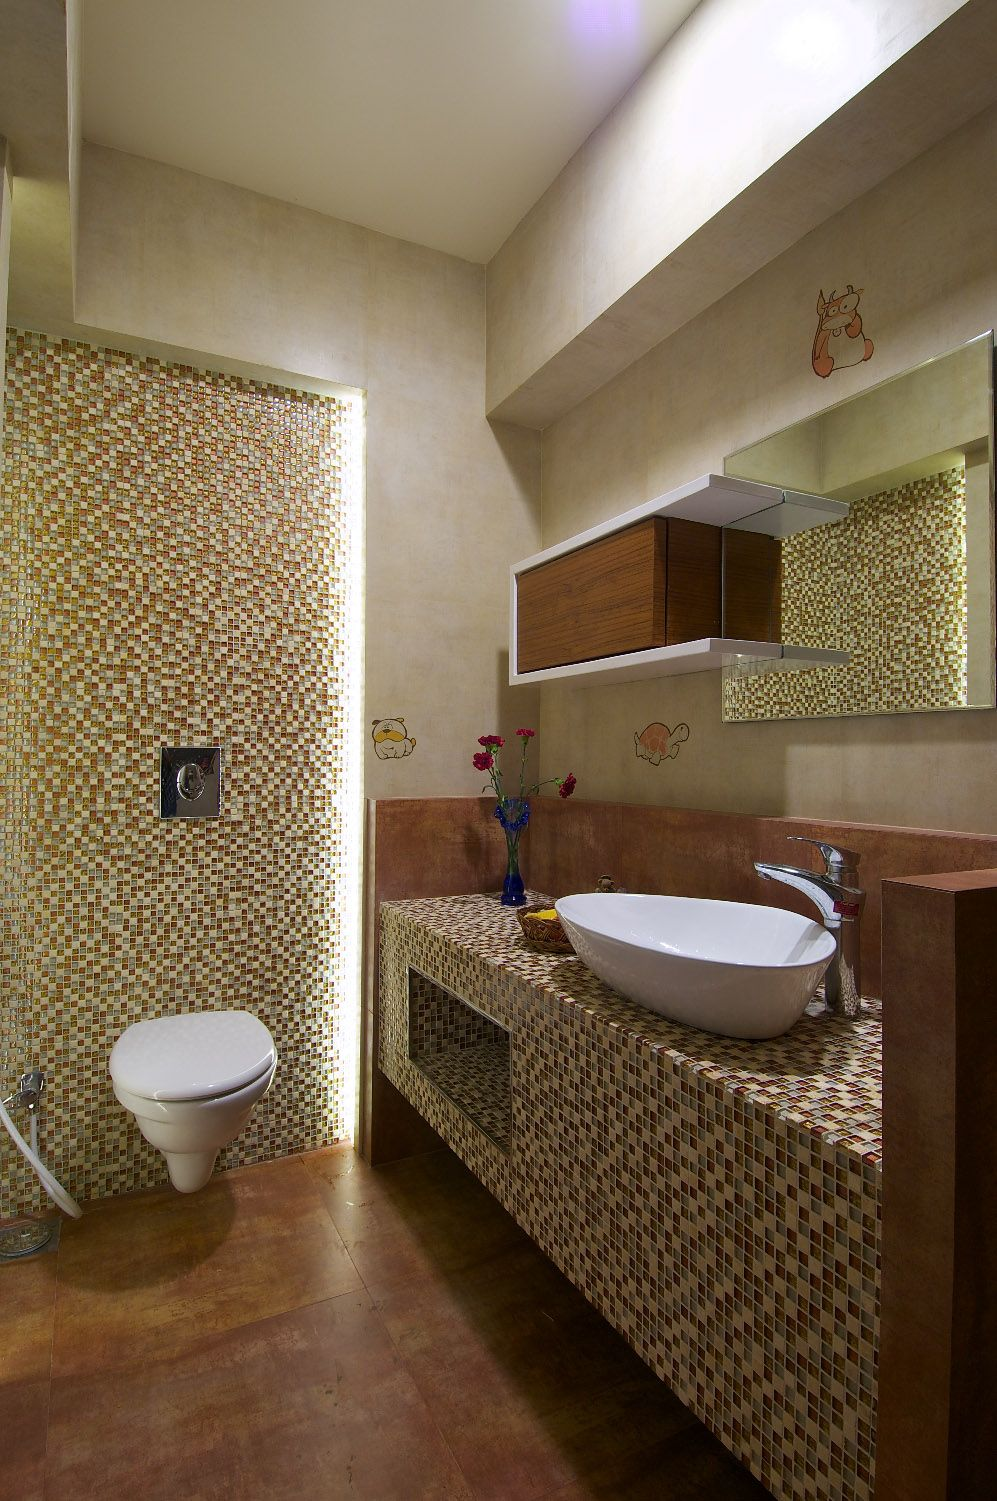 #architecture #architects #avfourthdimension #avfourthdimensioninterior #ameevora #interior #interiordesign #indiandesign #indianarchitect #indiadesignworld #smw_india #modern #contemporary  #luxury #concept #chic #childrensroom #contrast #details #art #highend #design #culture #safe #kids #beige #toys #decor #archdaily #contemporist #mumbai